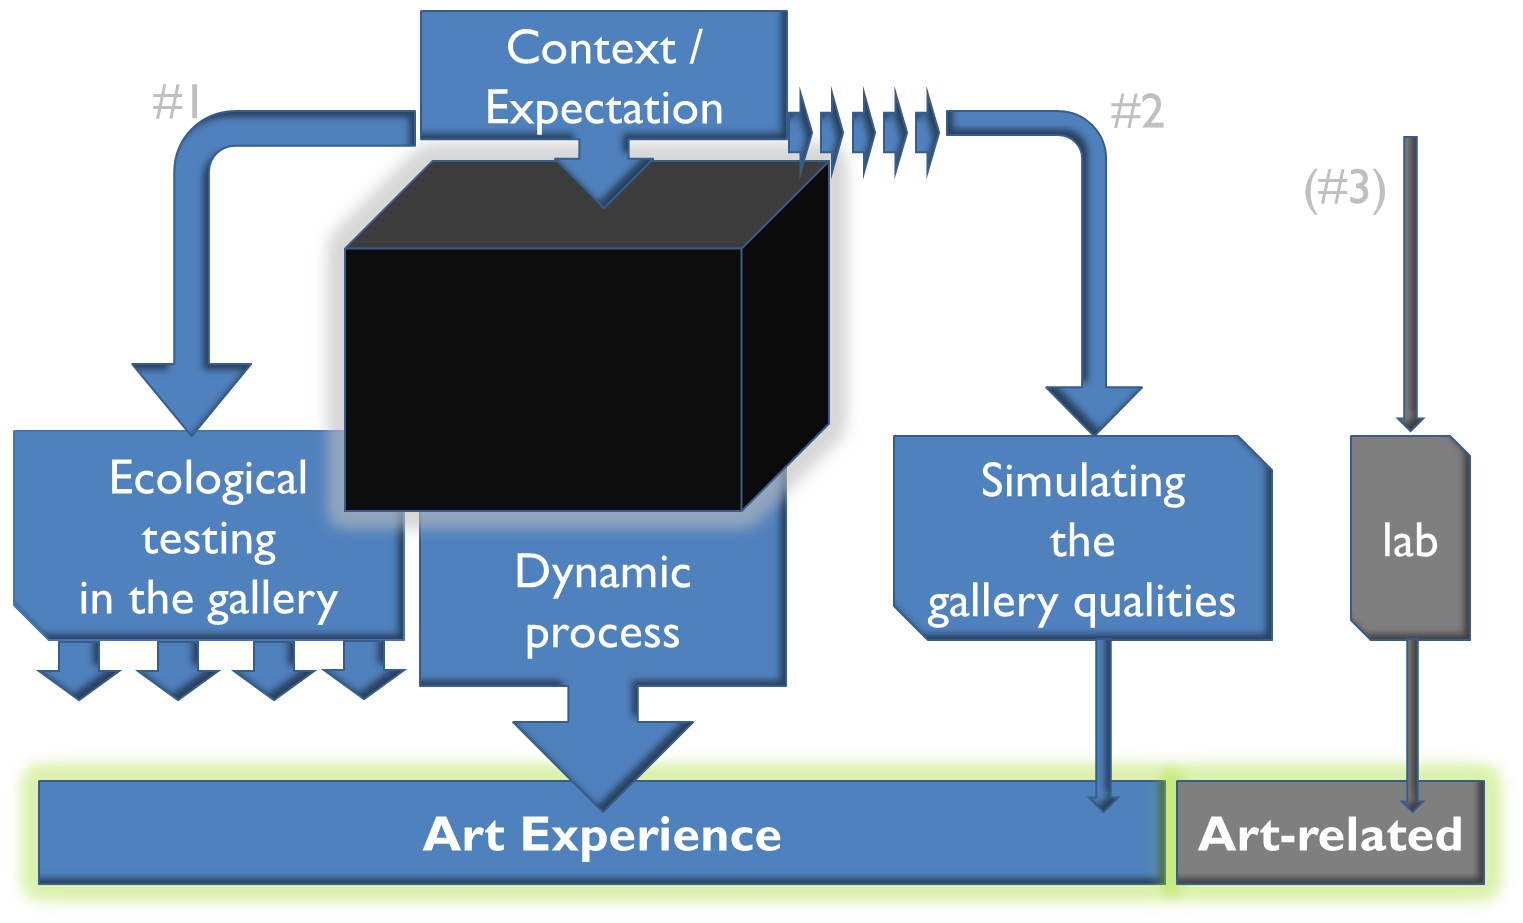 Experience diagramm